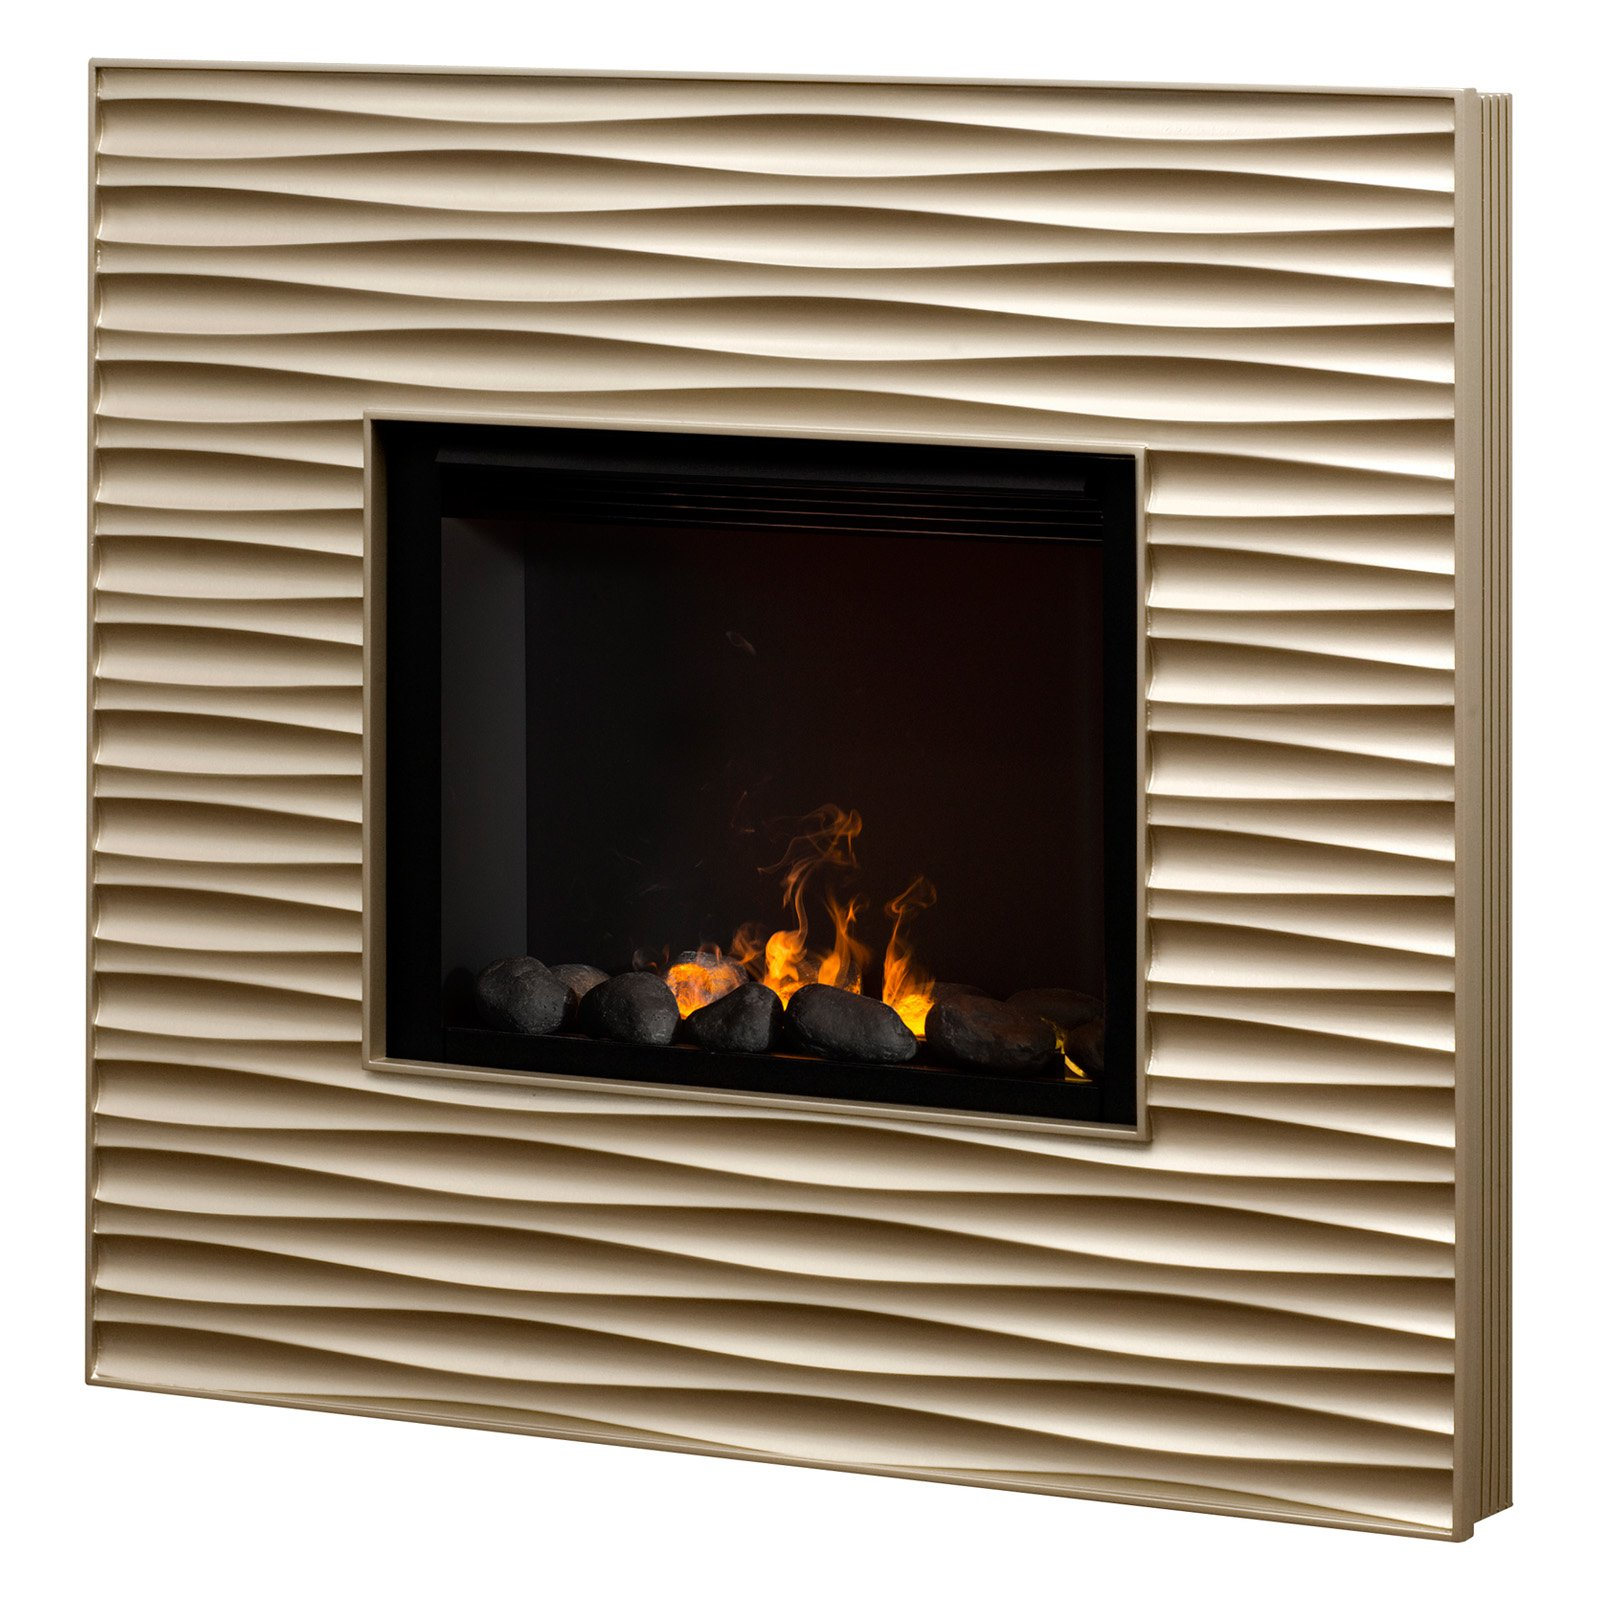 Buy Dimplex Willowridge Opti-Myst Wall Mount Electric Fireplace at Walmart.com